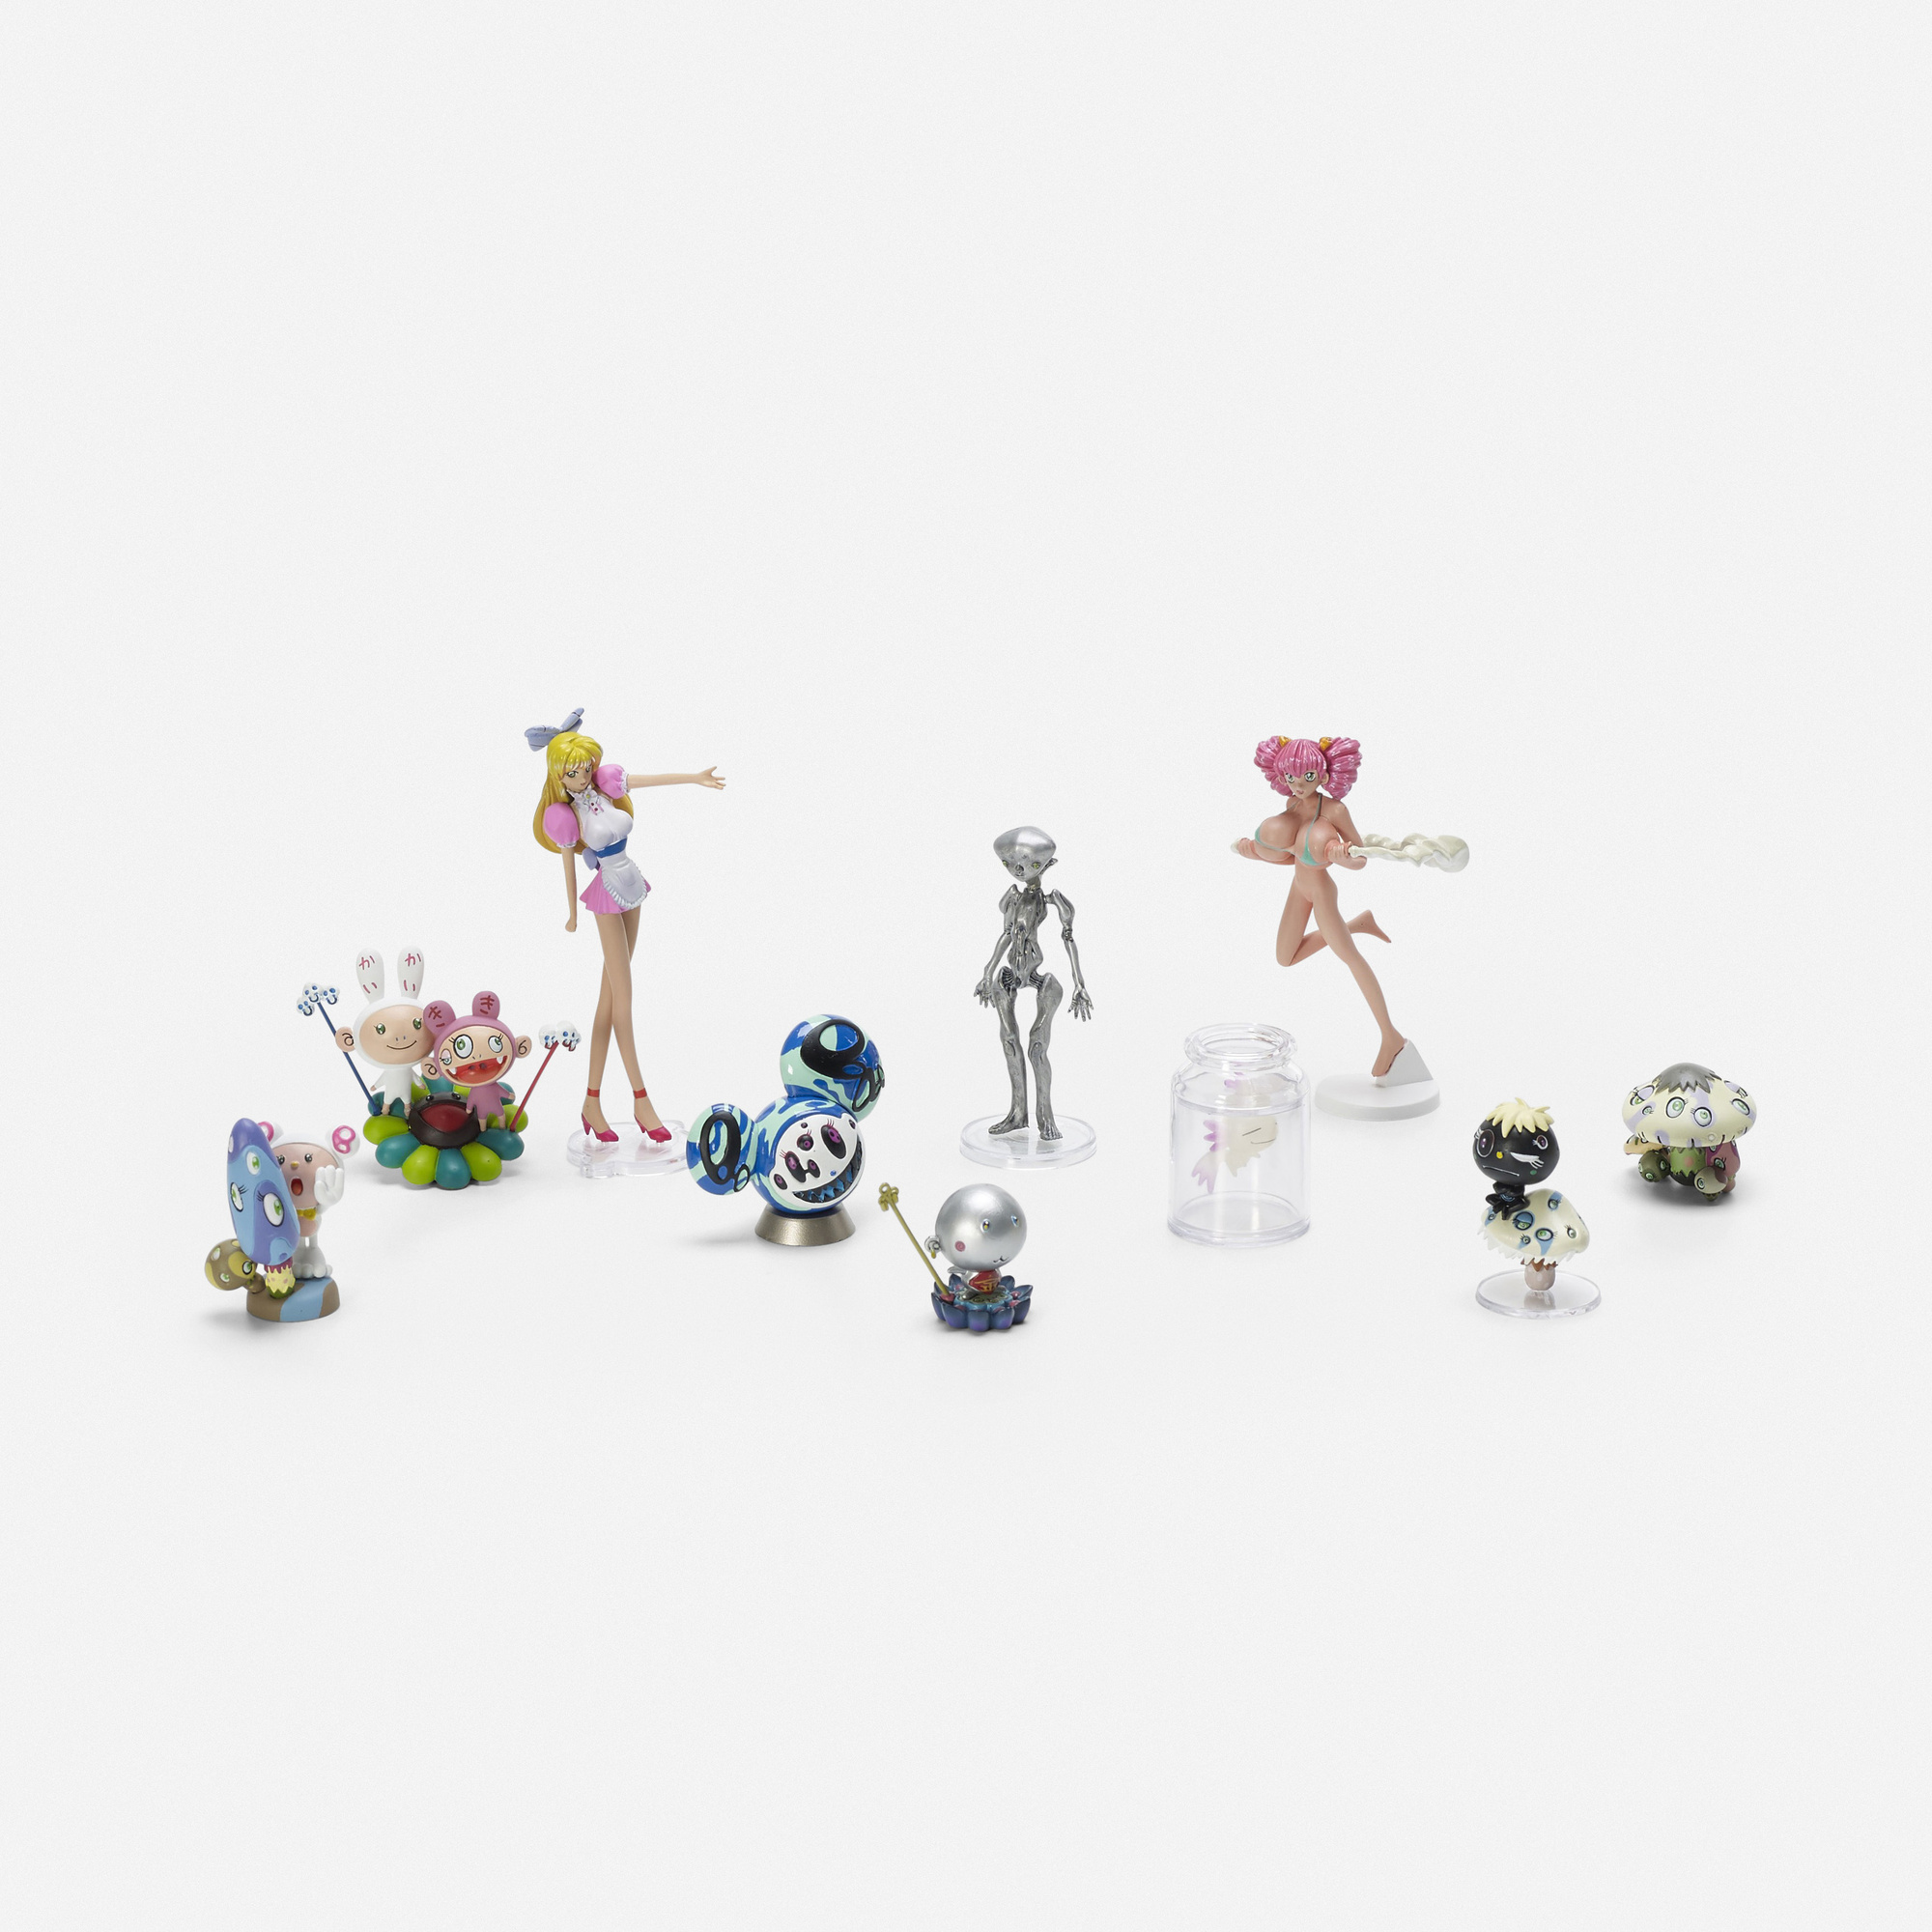 622: Takashi Murakami / set of ten figures from Superflat Museum: Convenience Store Edition (1 of 2)